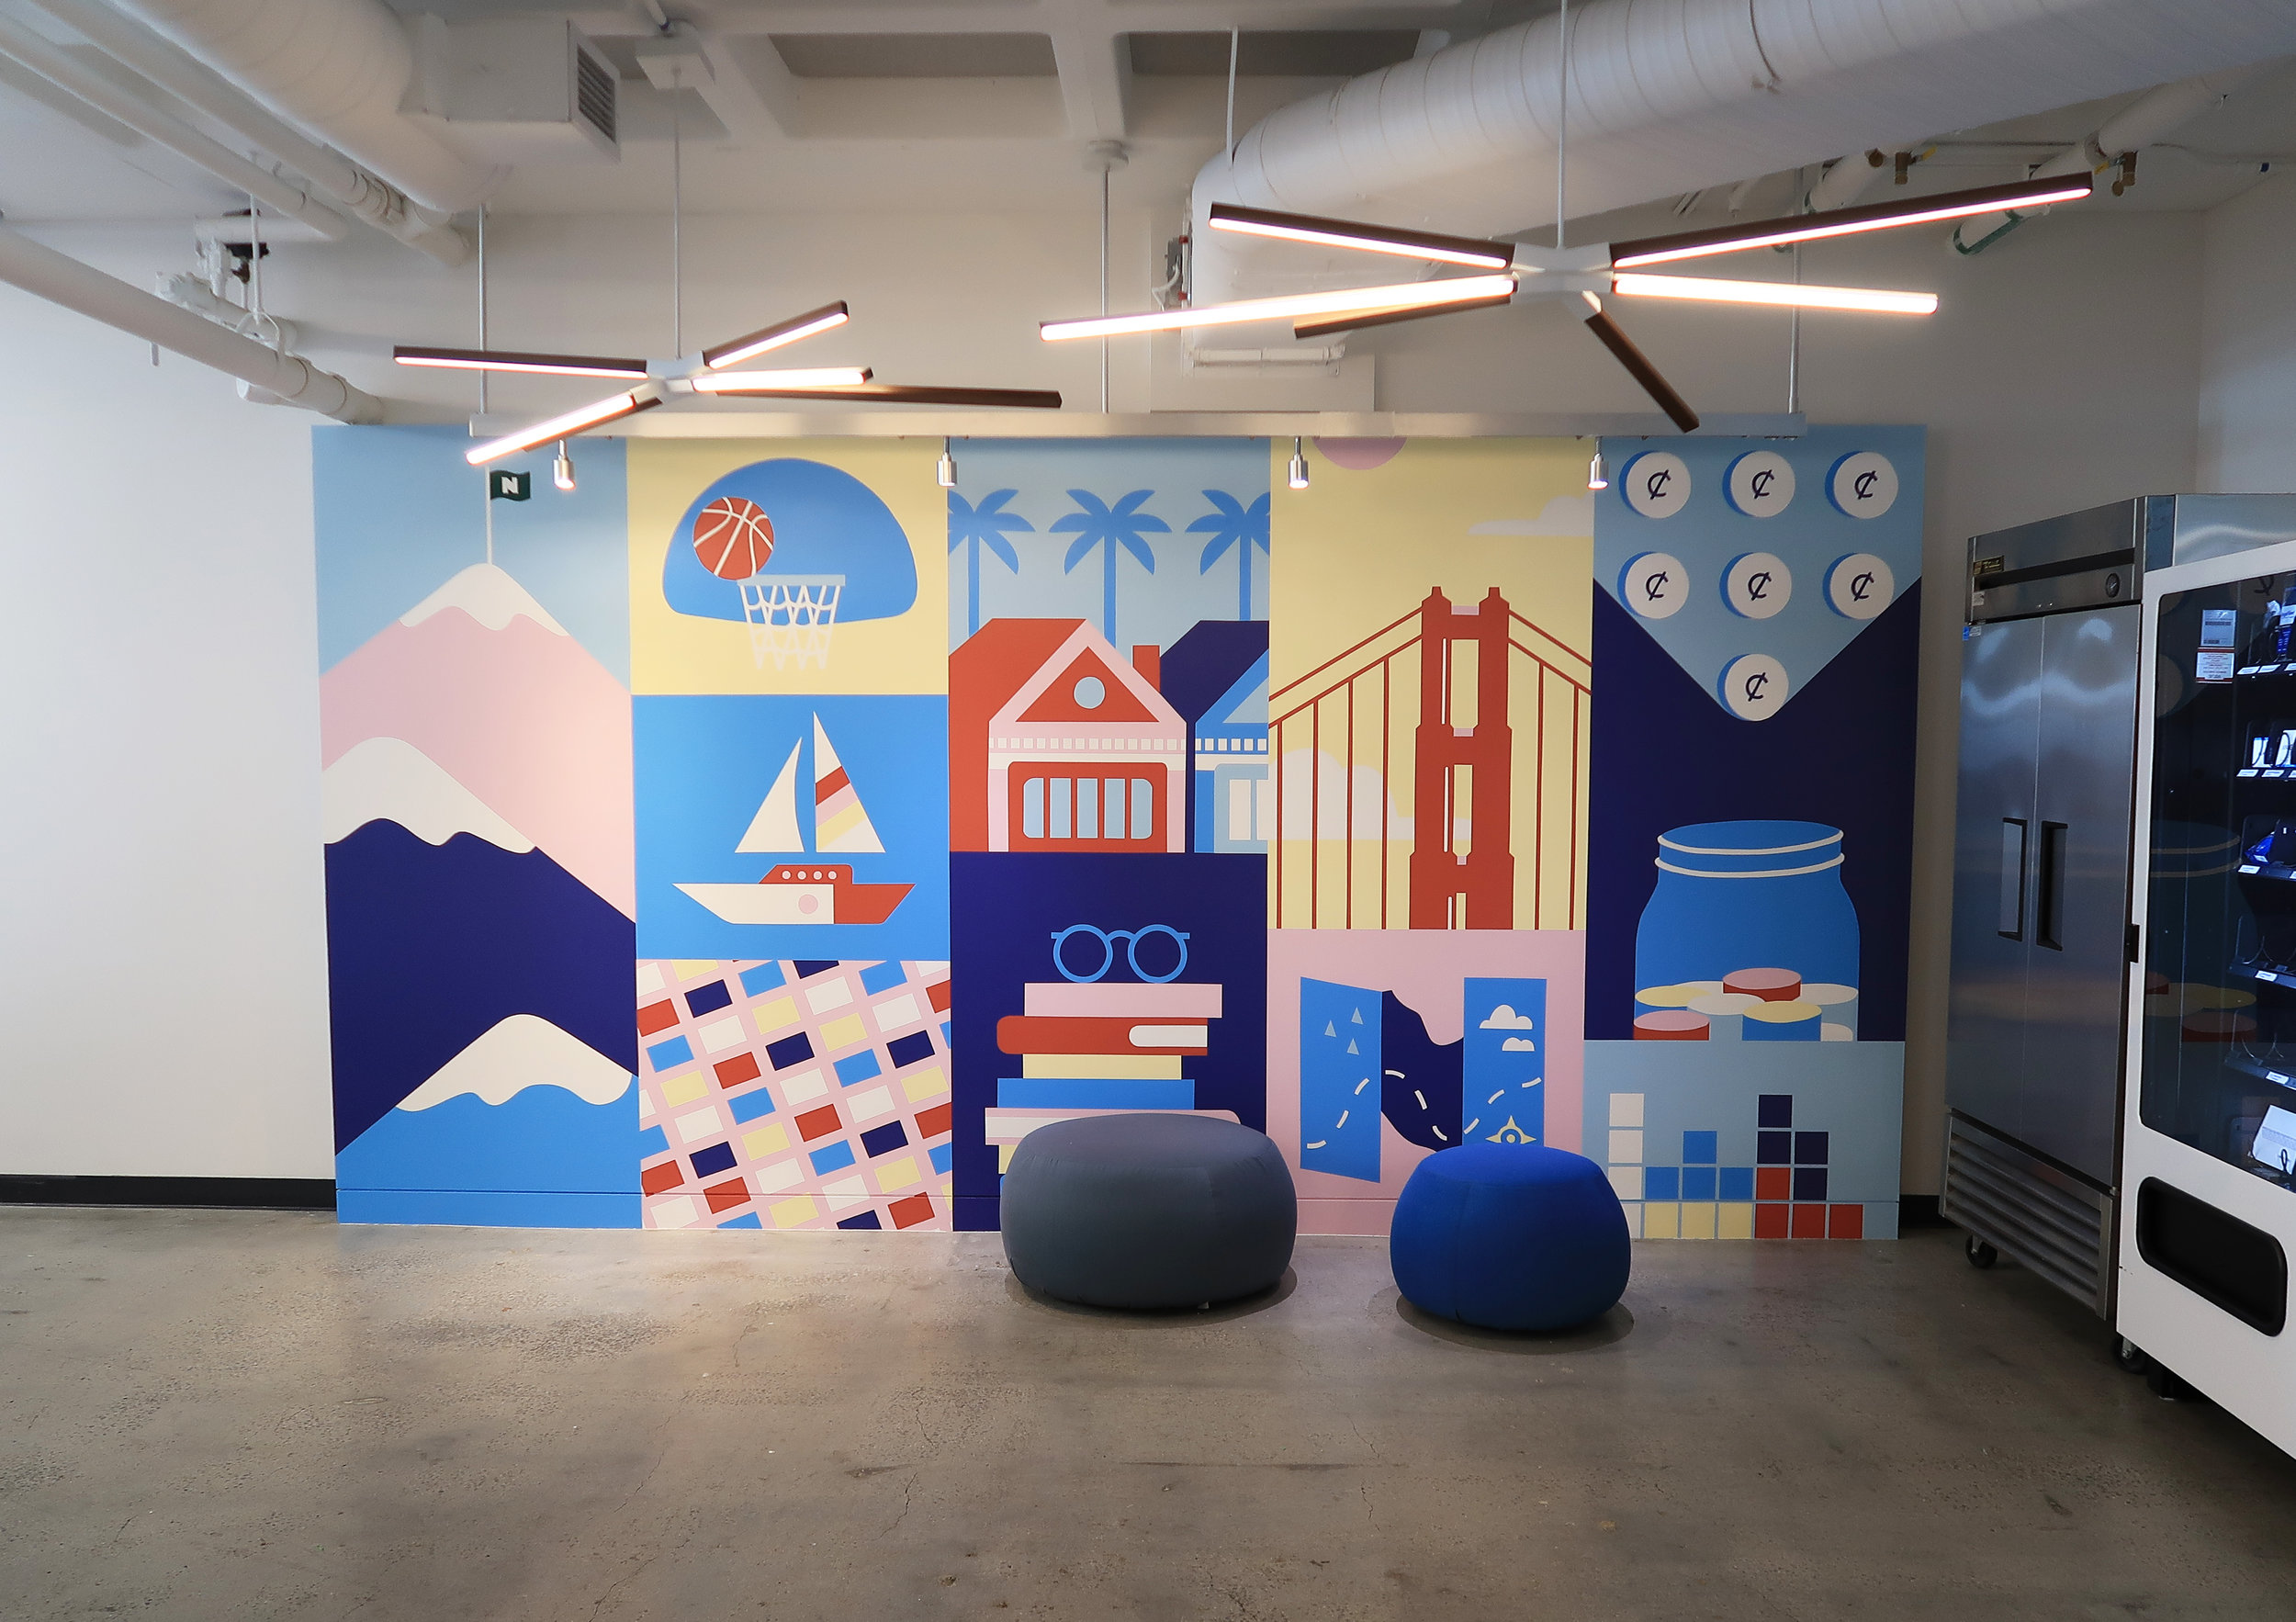 Office-commercial-mural-san-francisco-nerdwallet-wall-and-wall-mural-company.jpg